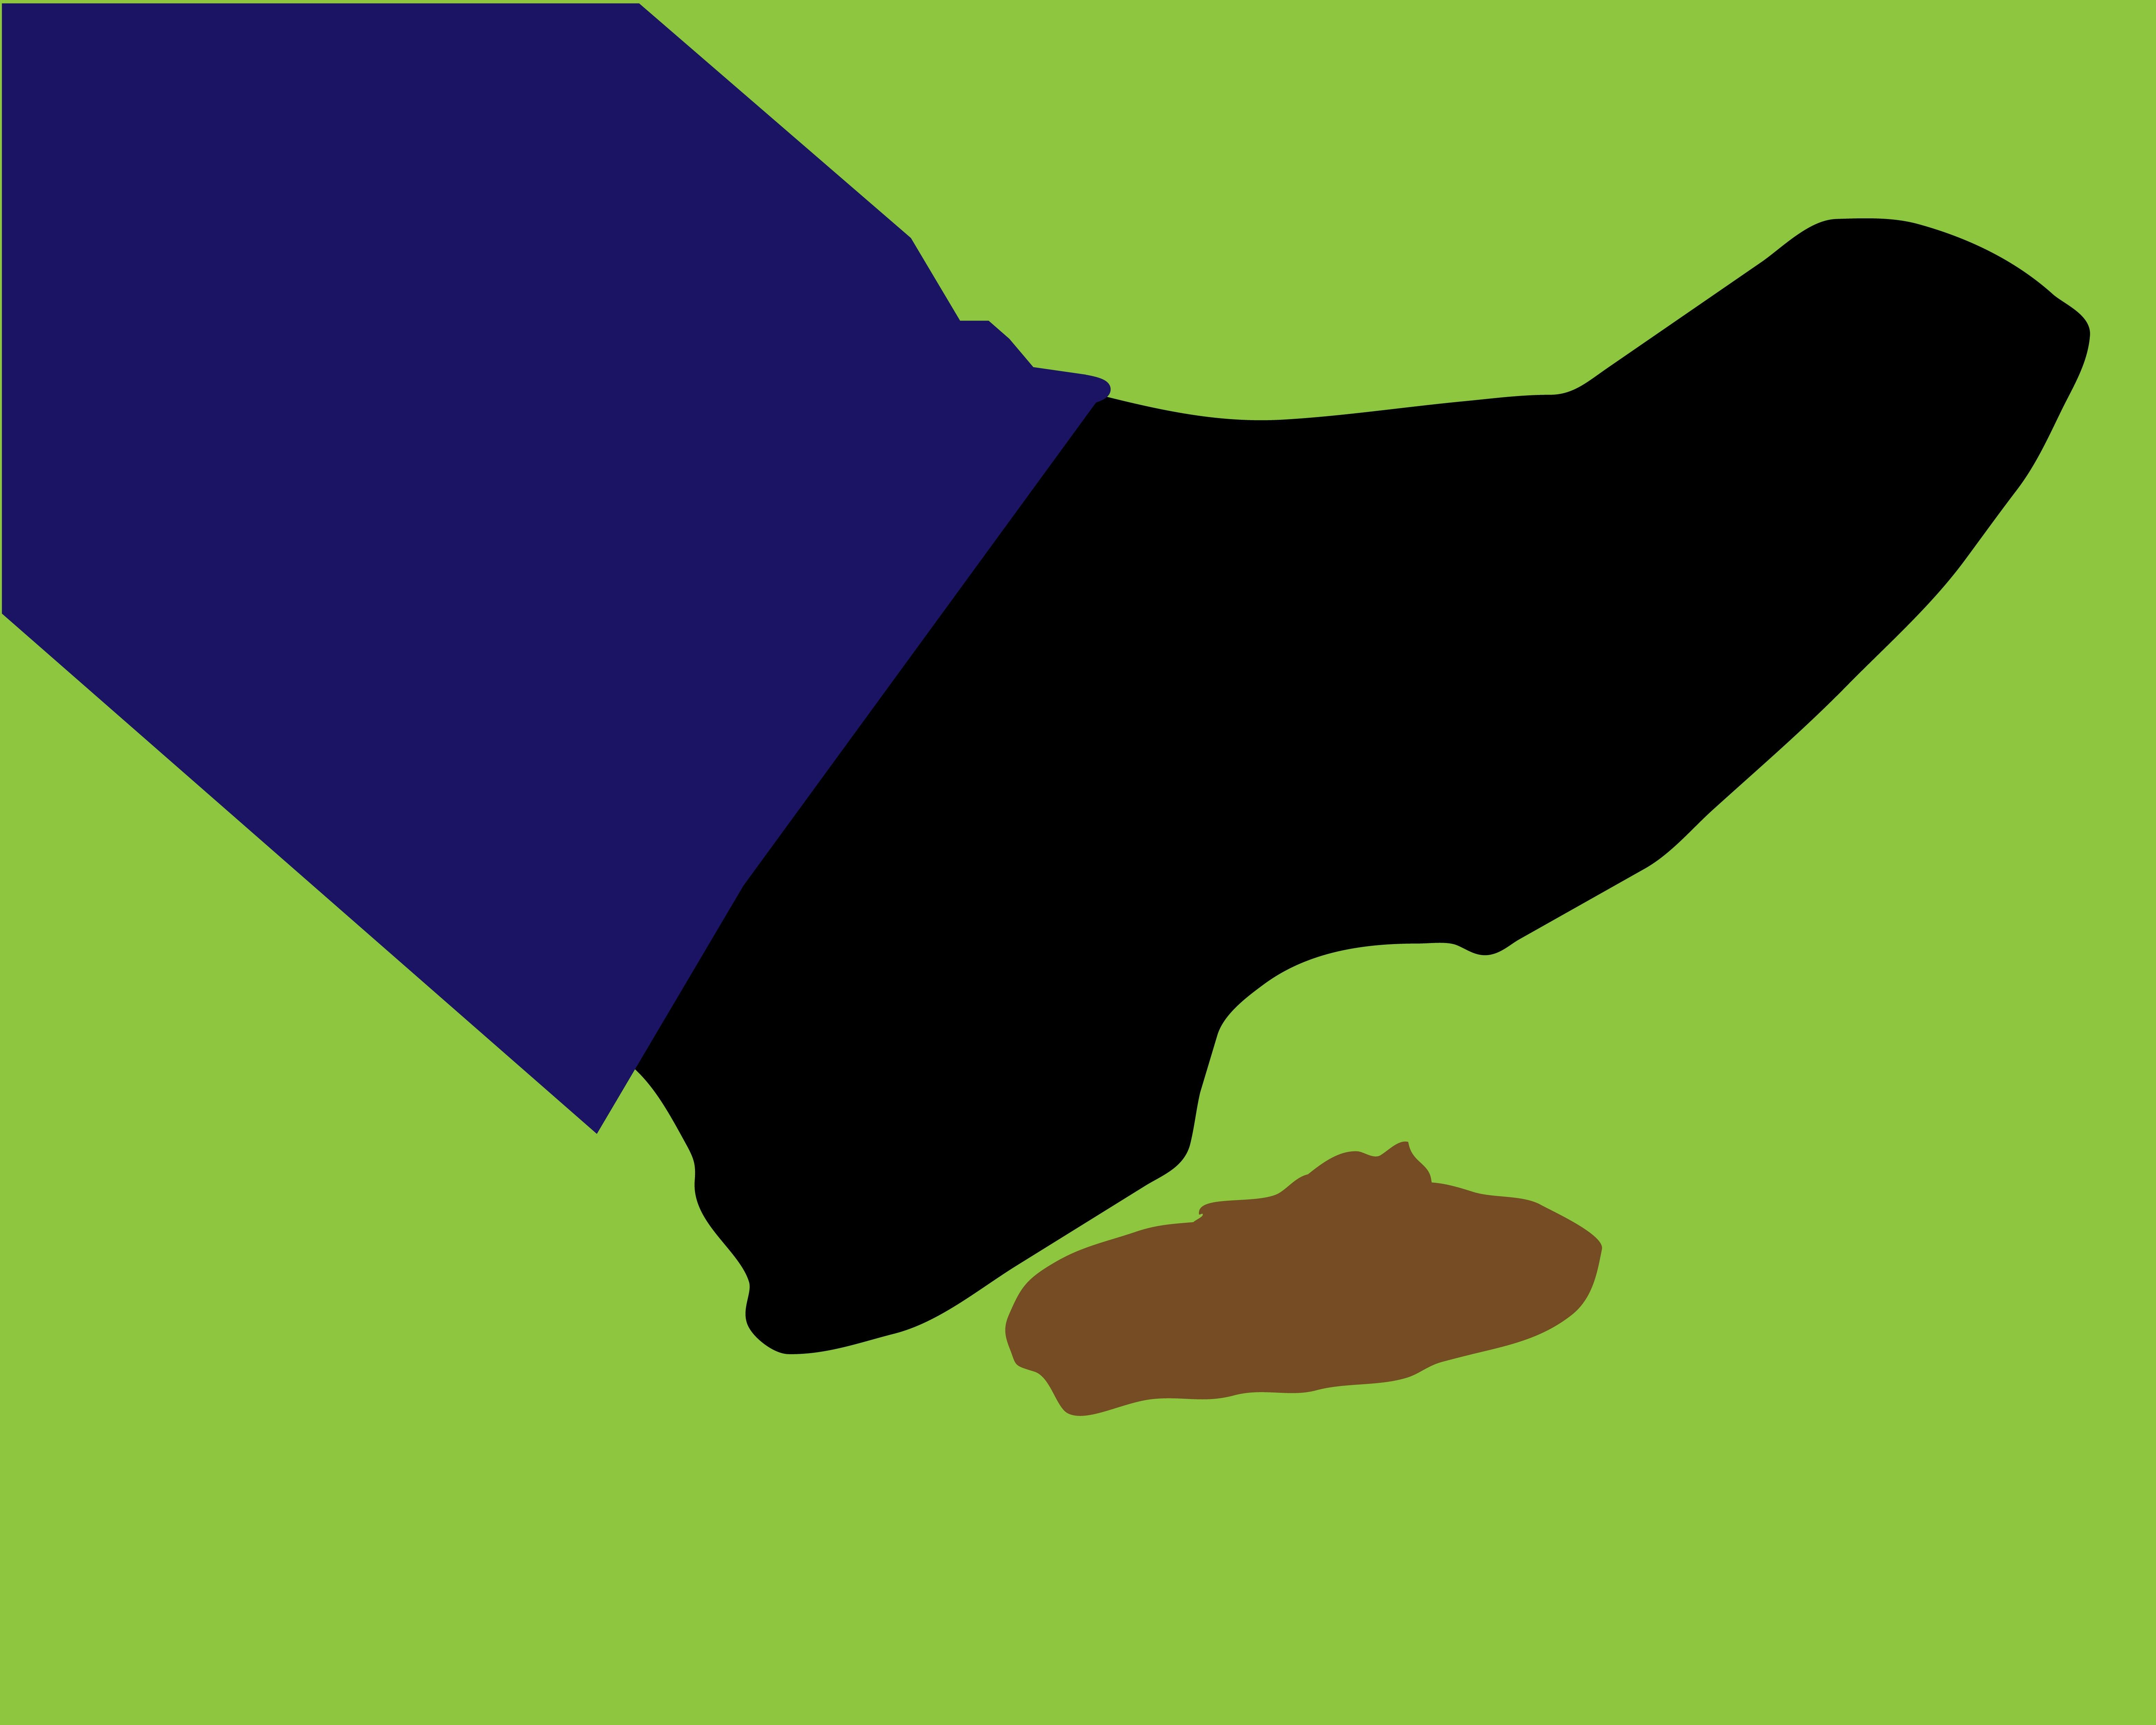 Clip art style image of someone stepping on dog faeces